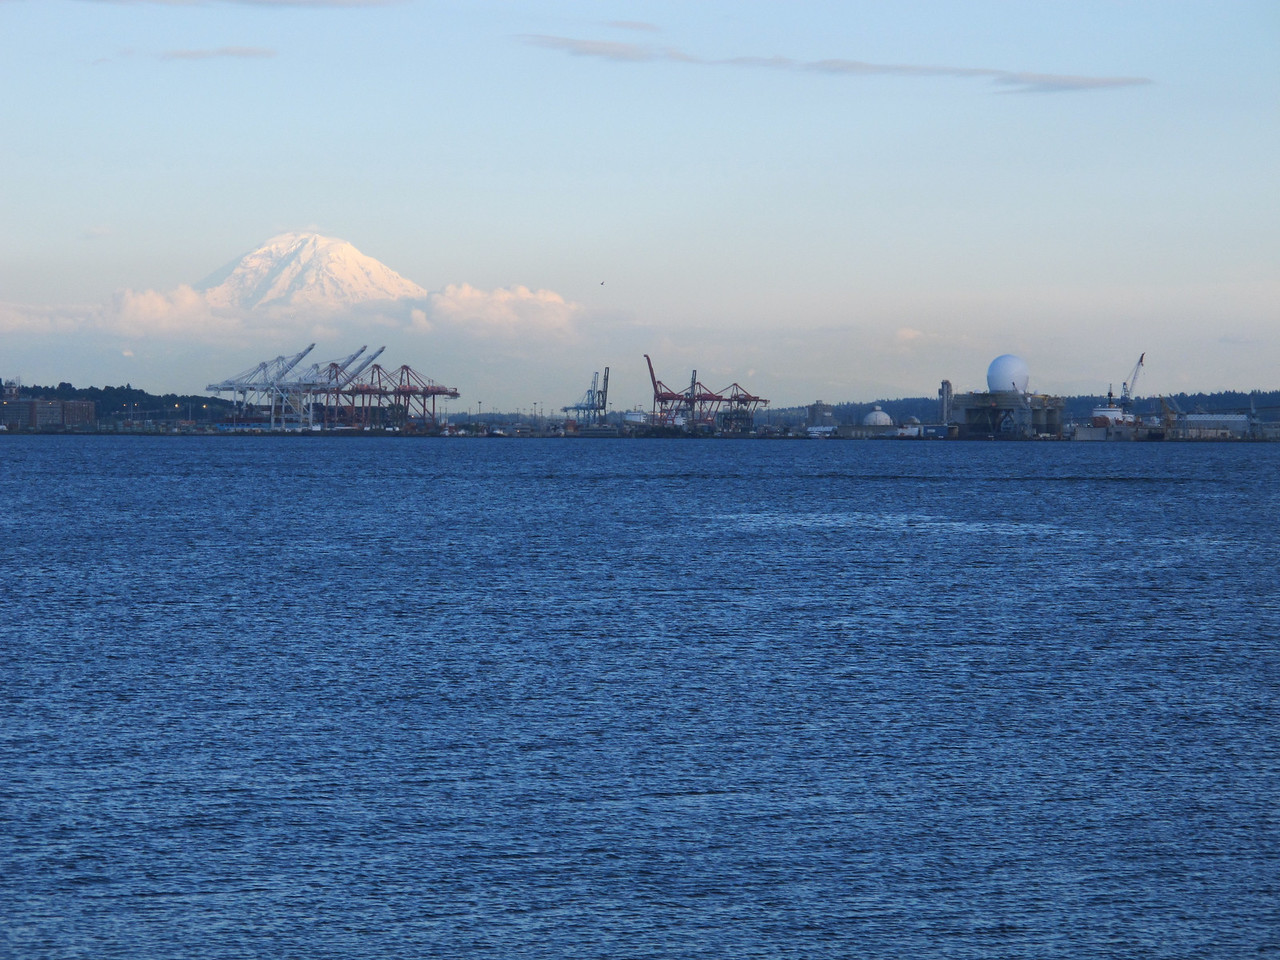 Saturday, June 25, 2011. Mt. Rainier looms over the Port of Seattle. This was the view after a 60 mile ride in preparation for this year's Seattle to Portland bicycle ride in two weeks.<br /> <br /> The Domed structure on the right is a platform that is used by the US Missile Protection System. It is being refurbished in Seattle. The dome houses an extremely sensitive phased array radar. This platform is self propelled and is normally situated close to trouble spots that pose a missile threat to the US or it's allies.